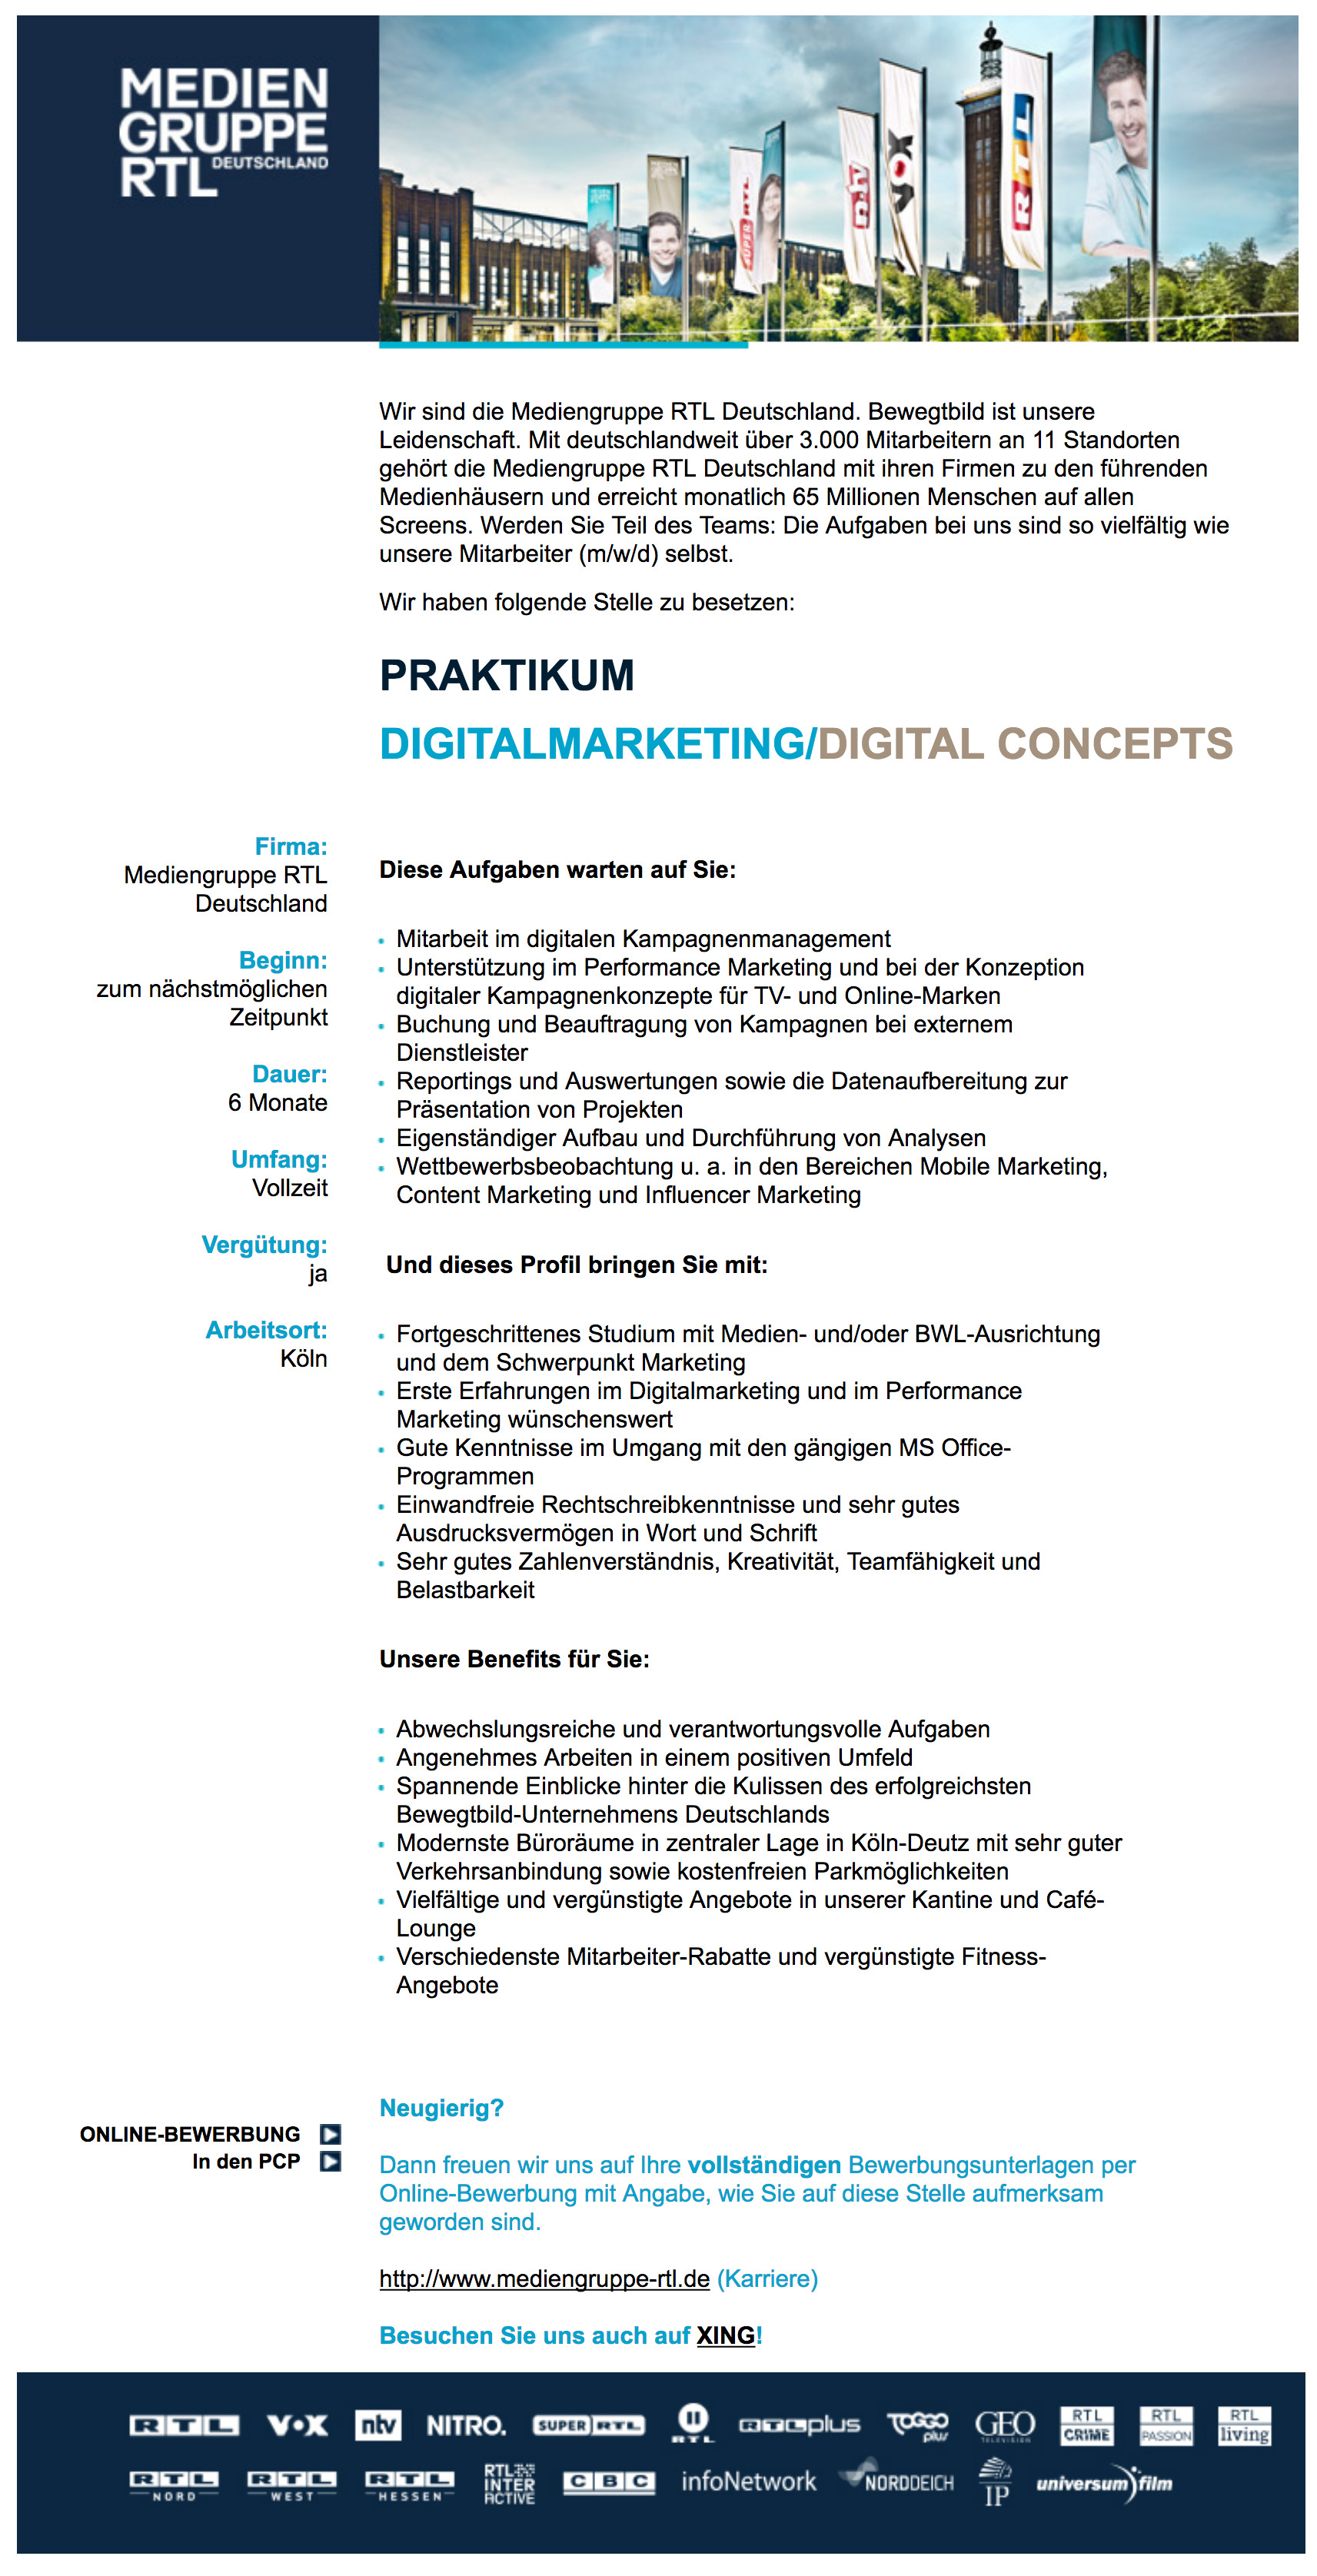 Praktikum Digitalmarketing / Digital Concepts